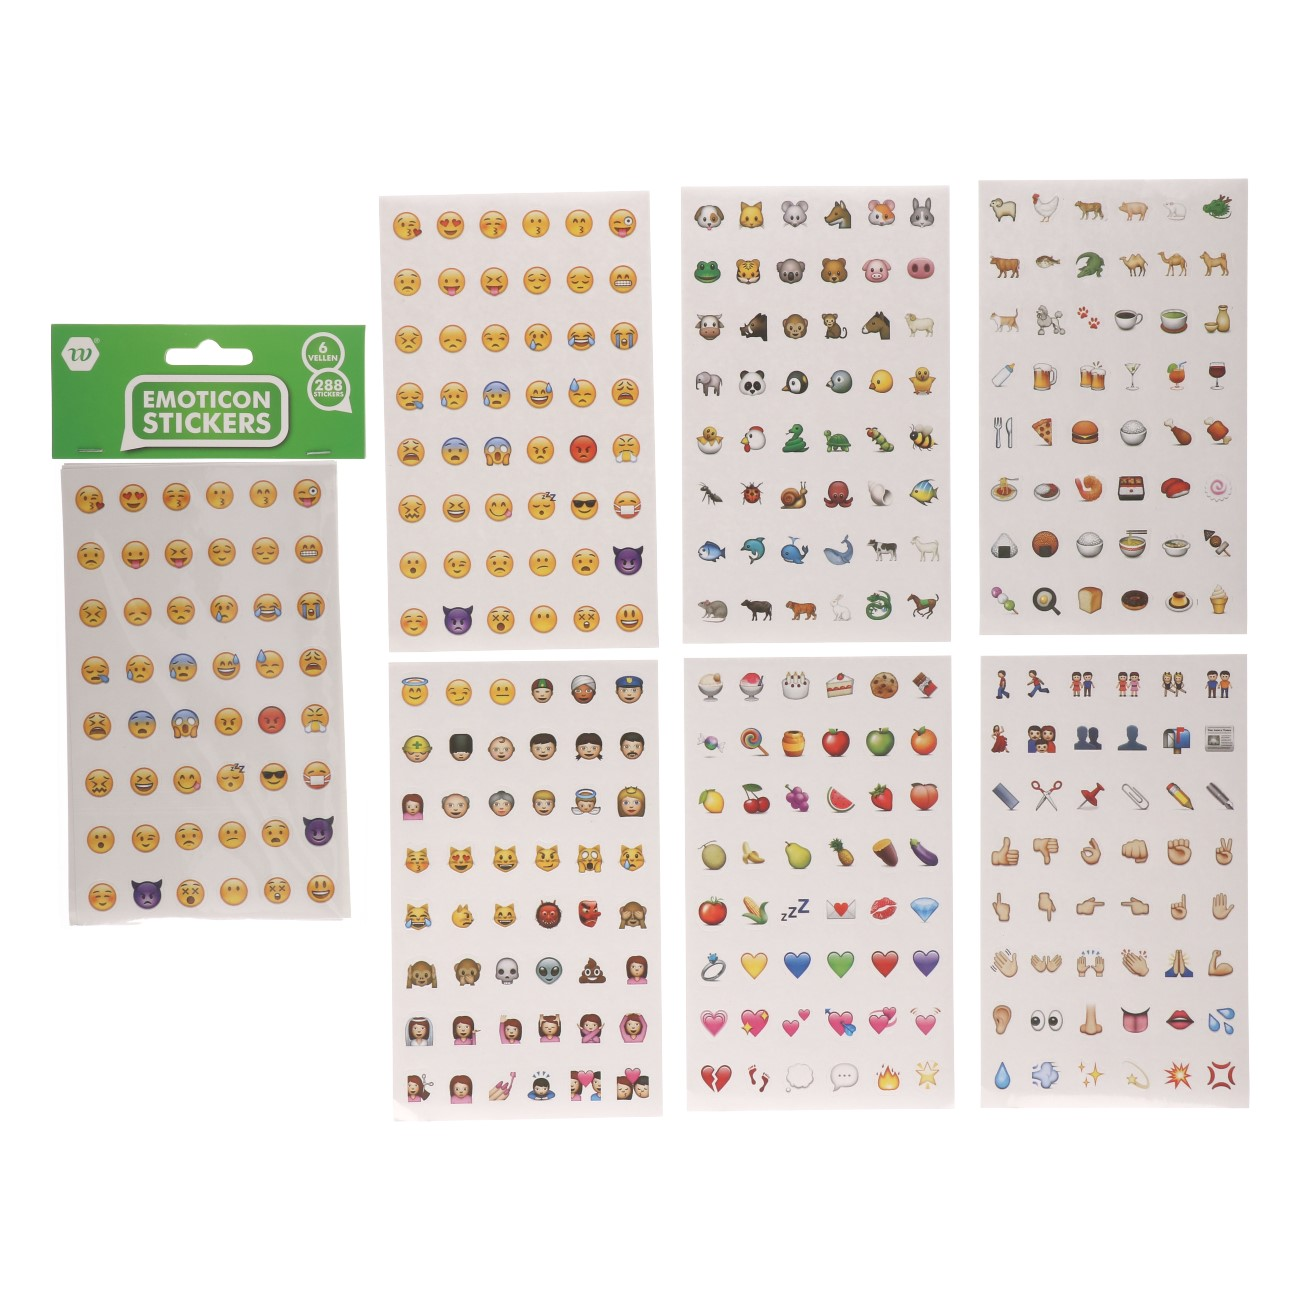 Emoticon stickers 288 stuks 6 vellen